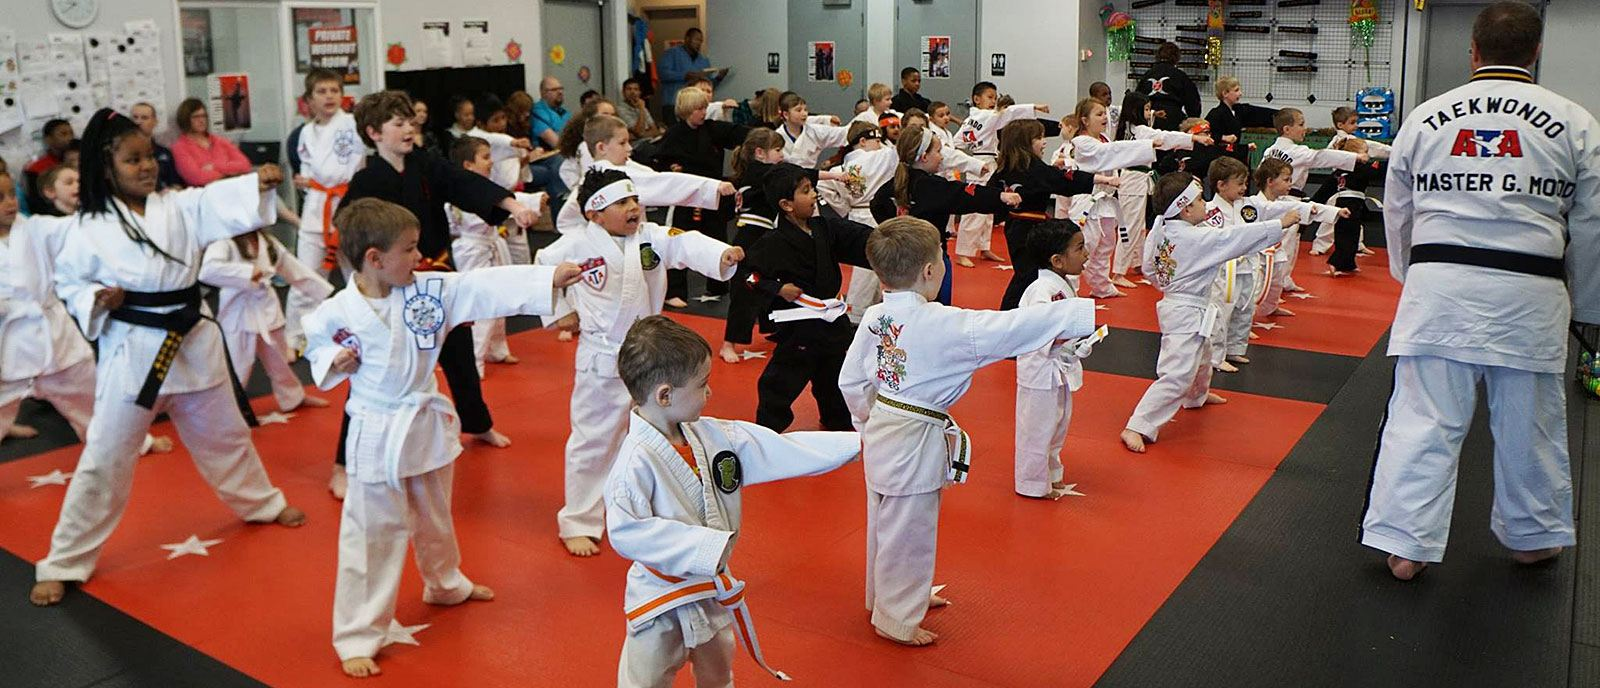 Karate Built Grand Rapids kids class